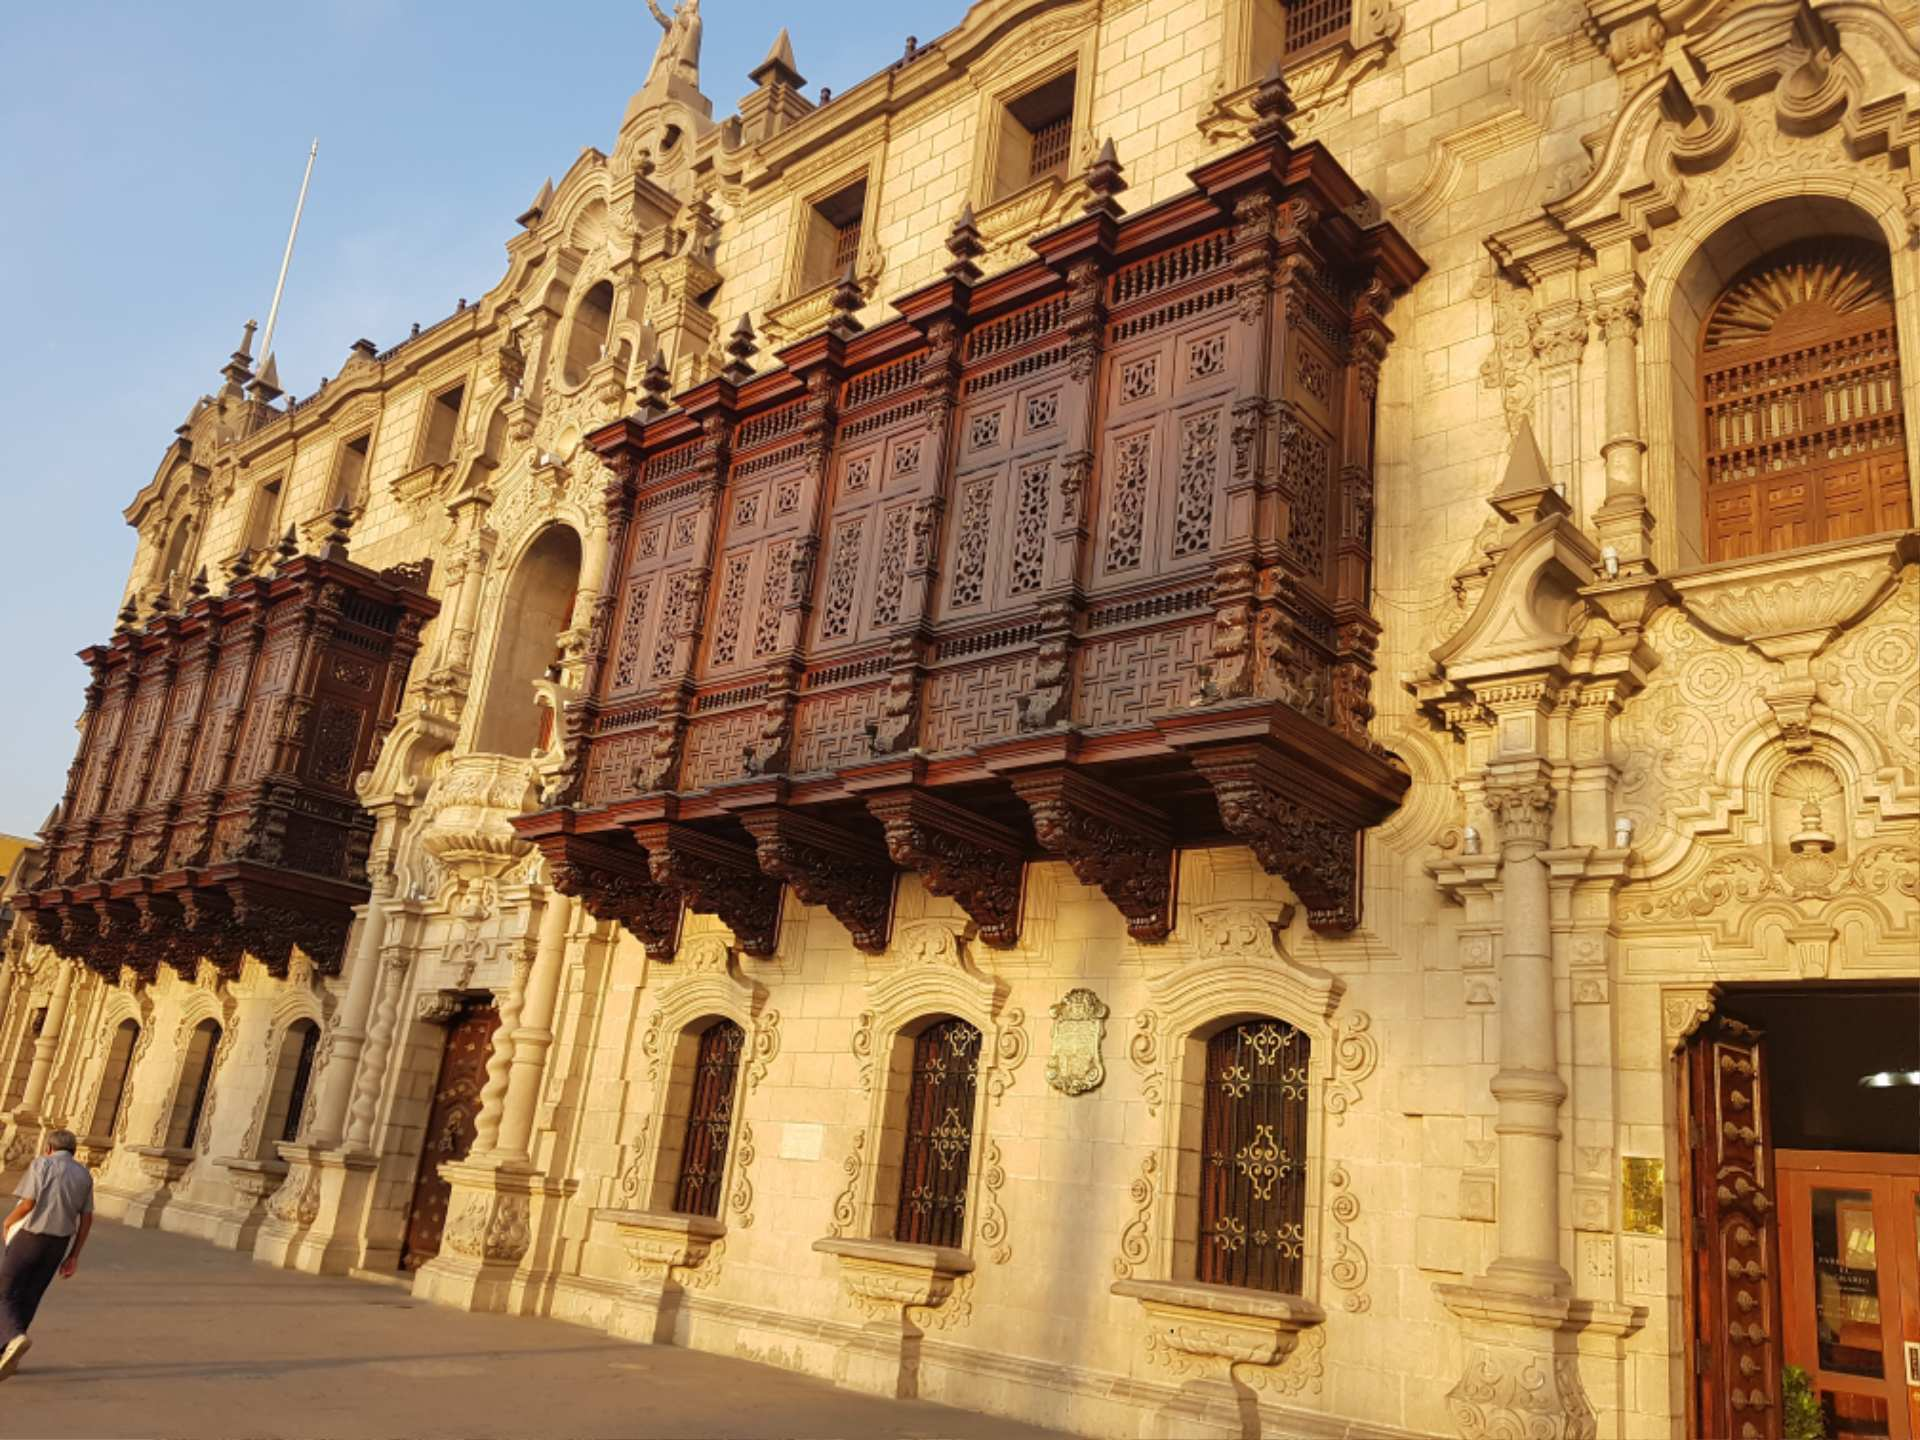 https://infromtheoutpost.com baroque balcony of the Cathedral of Lima, Peru